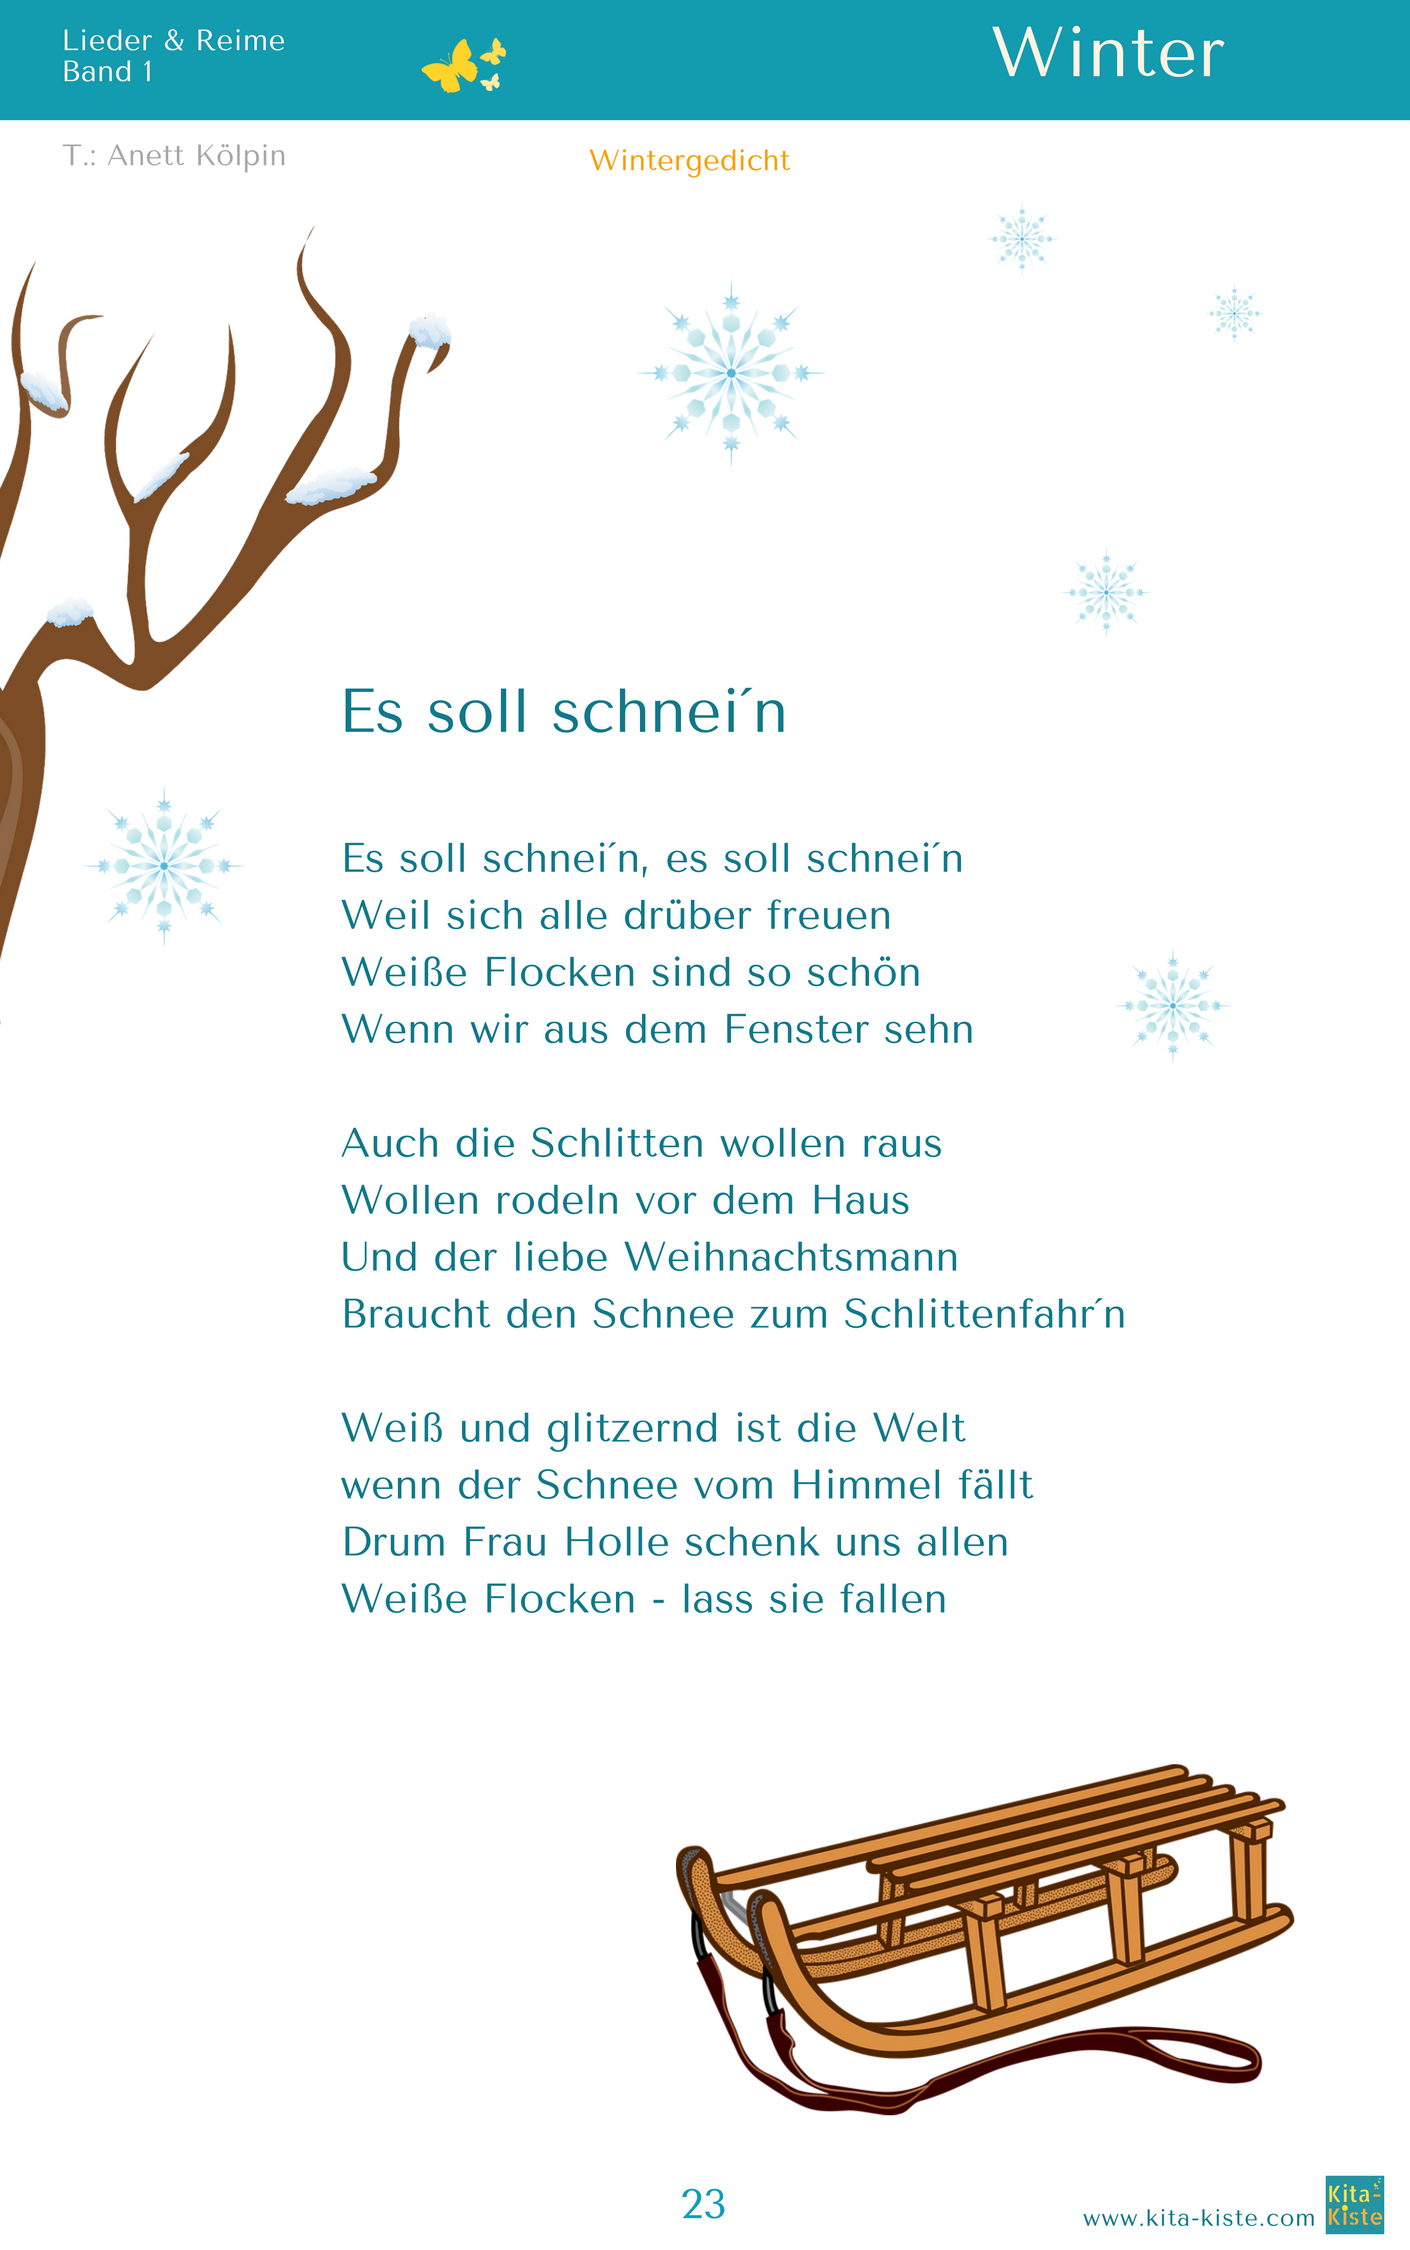 Kindergarten Reime Sprüche Quotes Soll Schnein Quot Winter Gedicht Aus Quotlieder And Reime